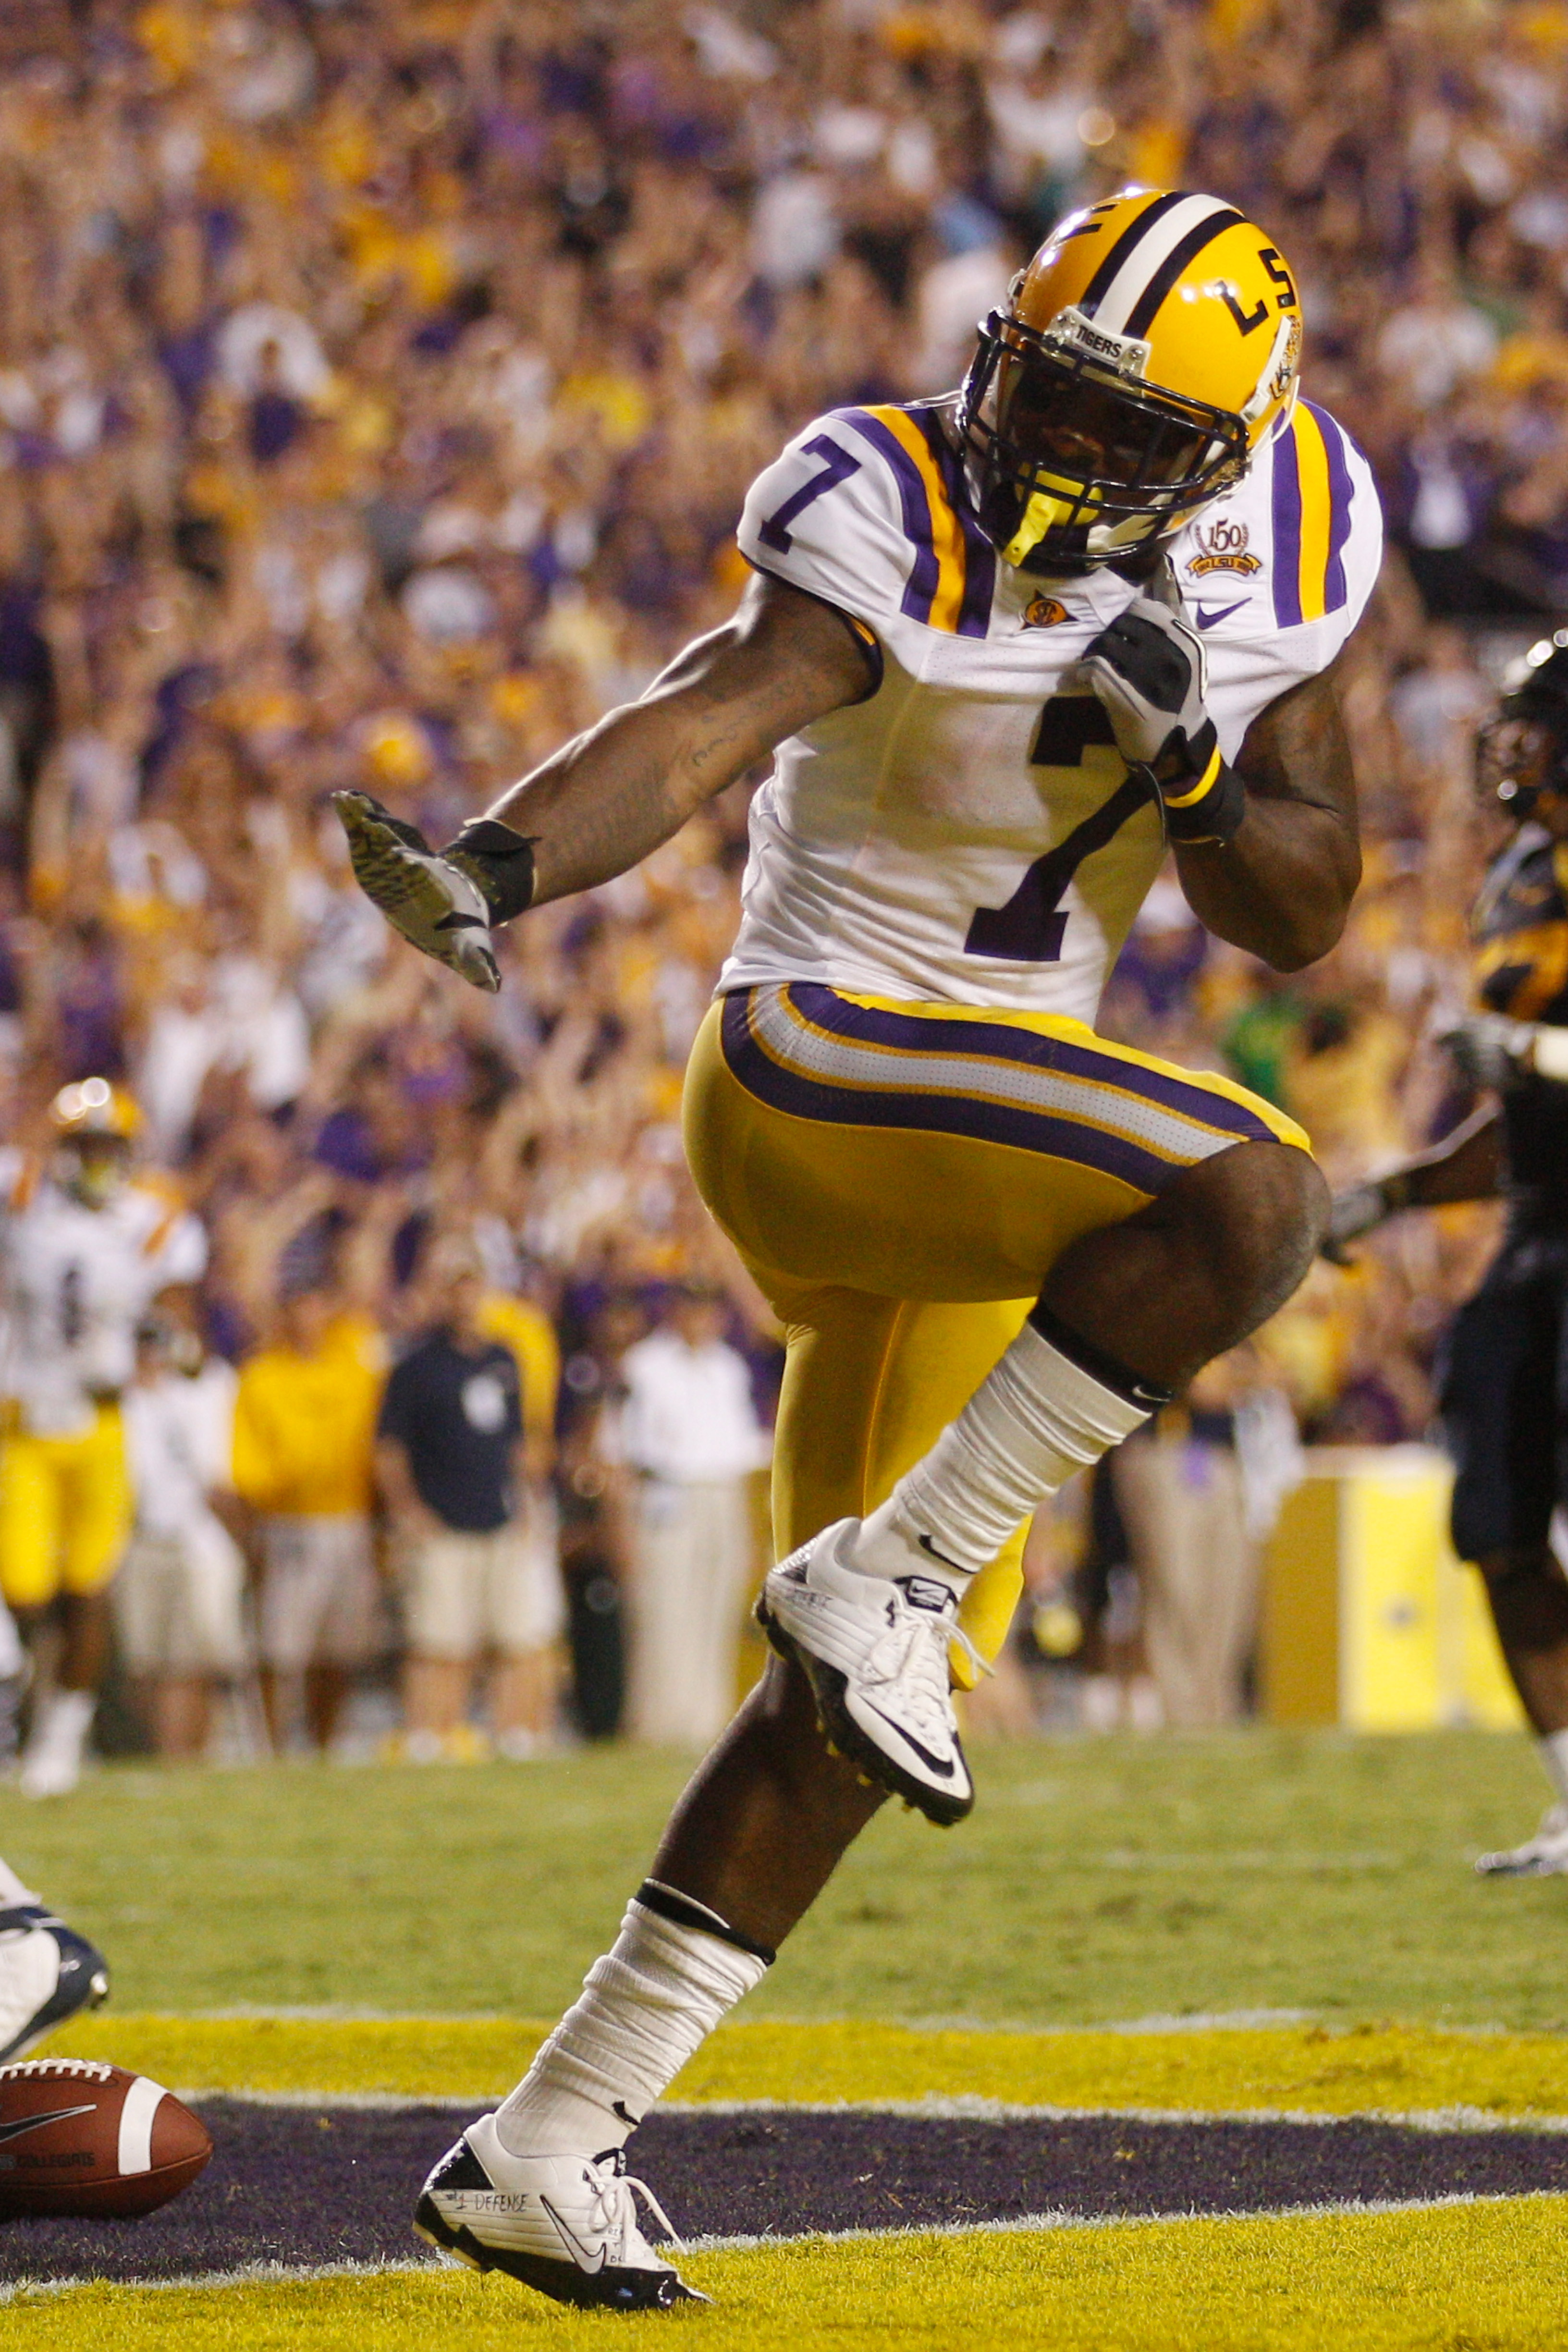 BATON ROUGE, LA - SEPTEMBER 25:  Patrick Peterson #7 of the Louisiana State Univeristy Tigers celebrates after scoring a touchdown by posing as the Heisman Trophy against the West Virginia Mountaineers at Tiger Stadium on September 25, 2010 in Baton Rouge